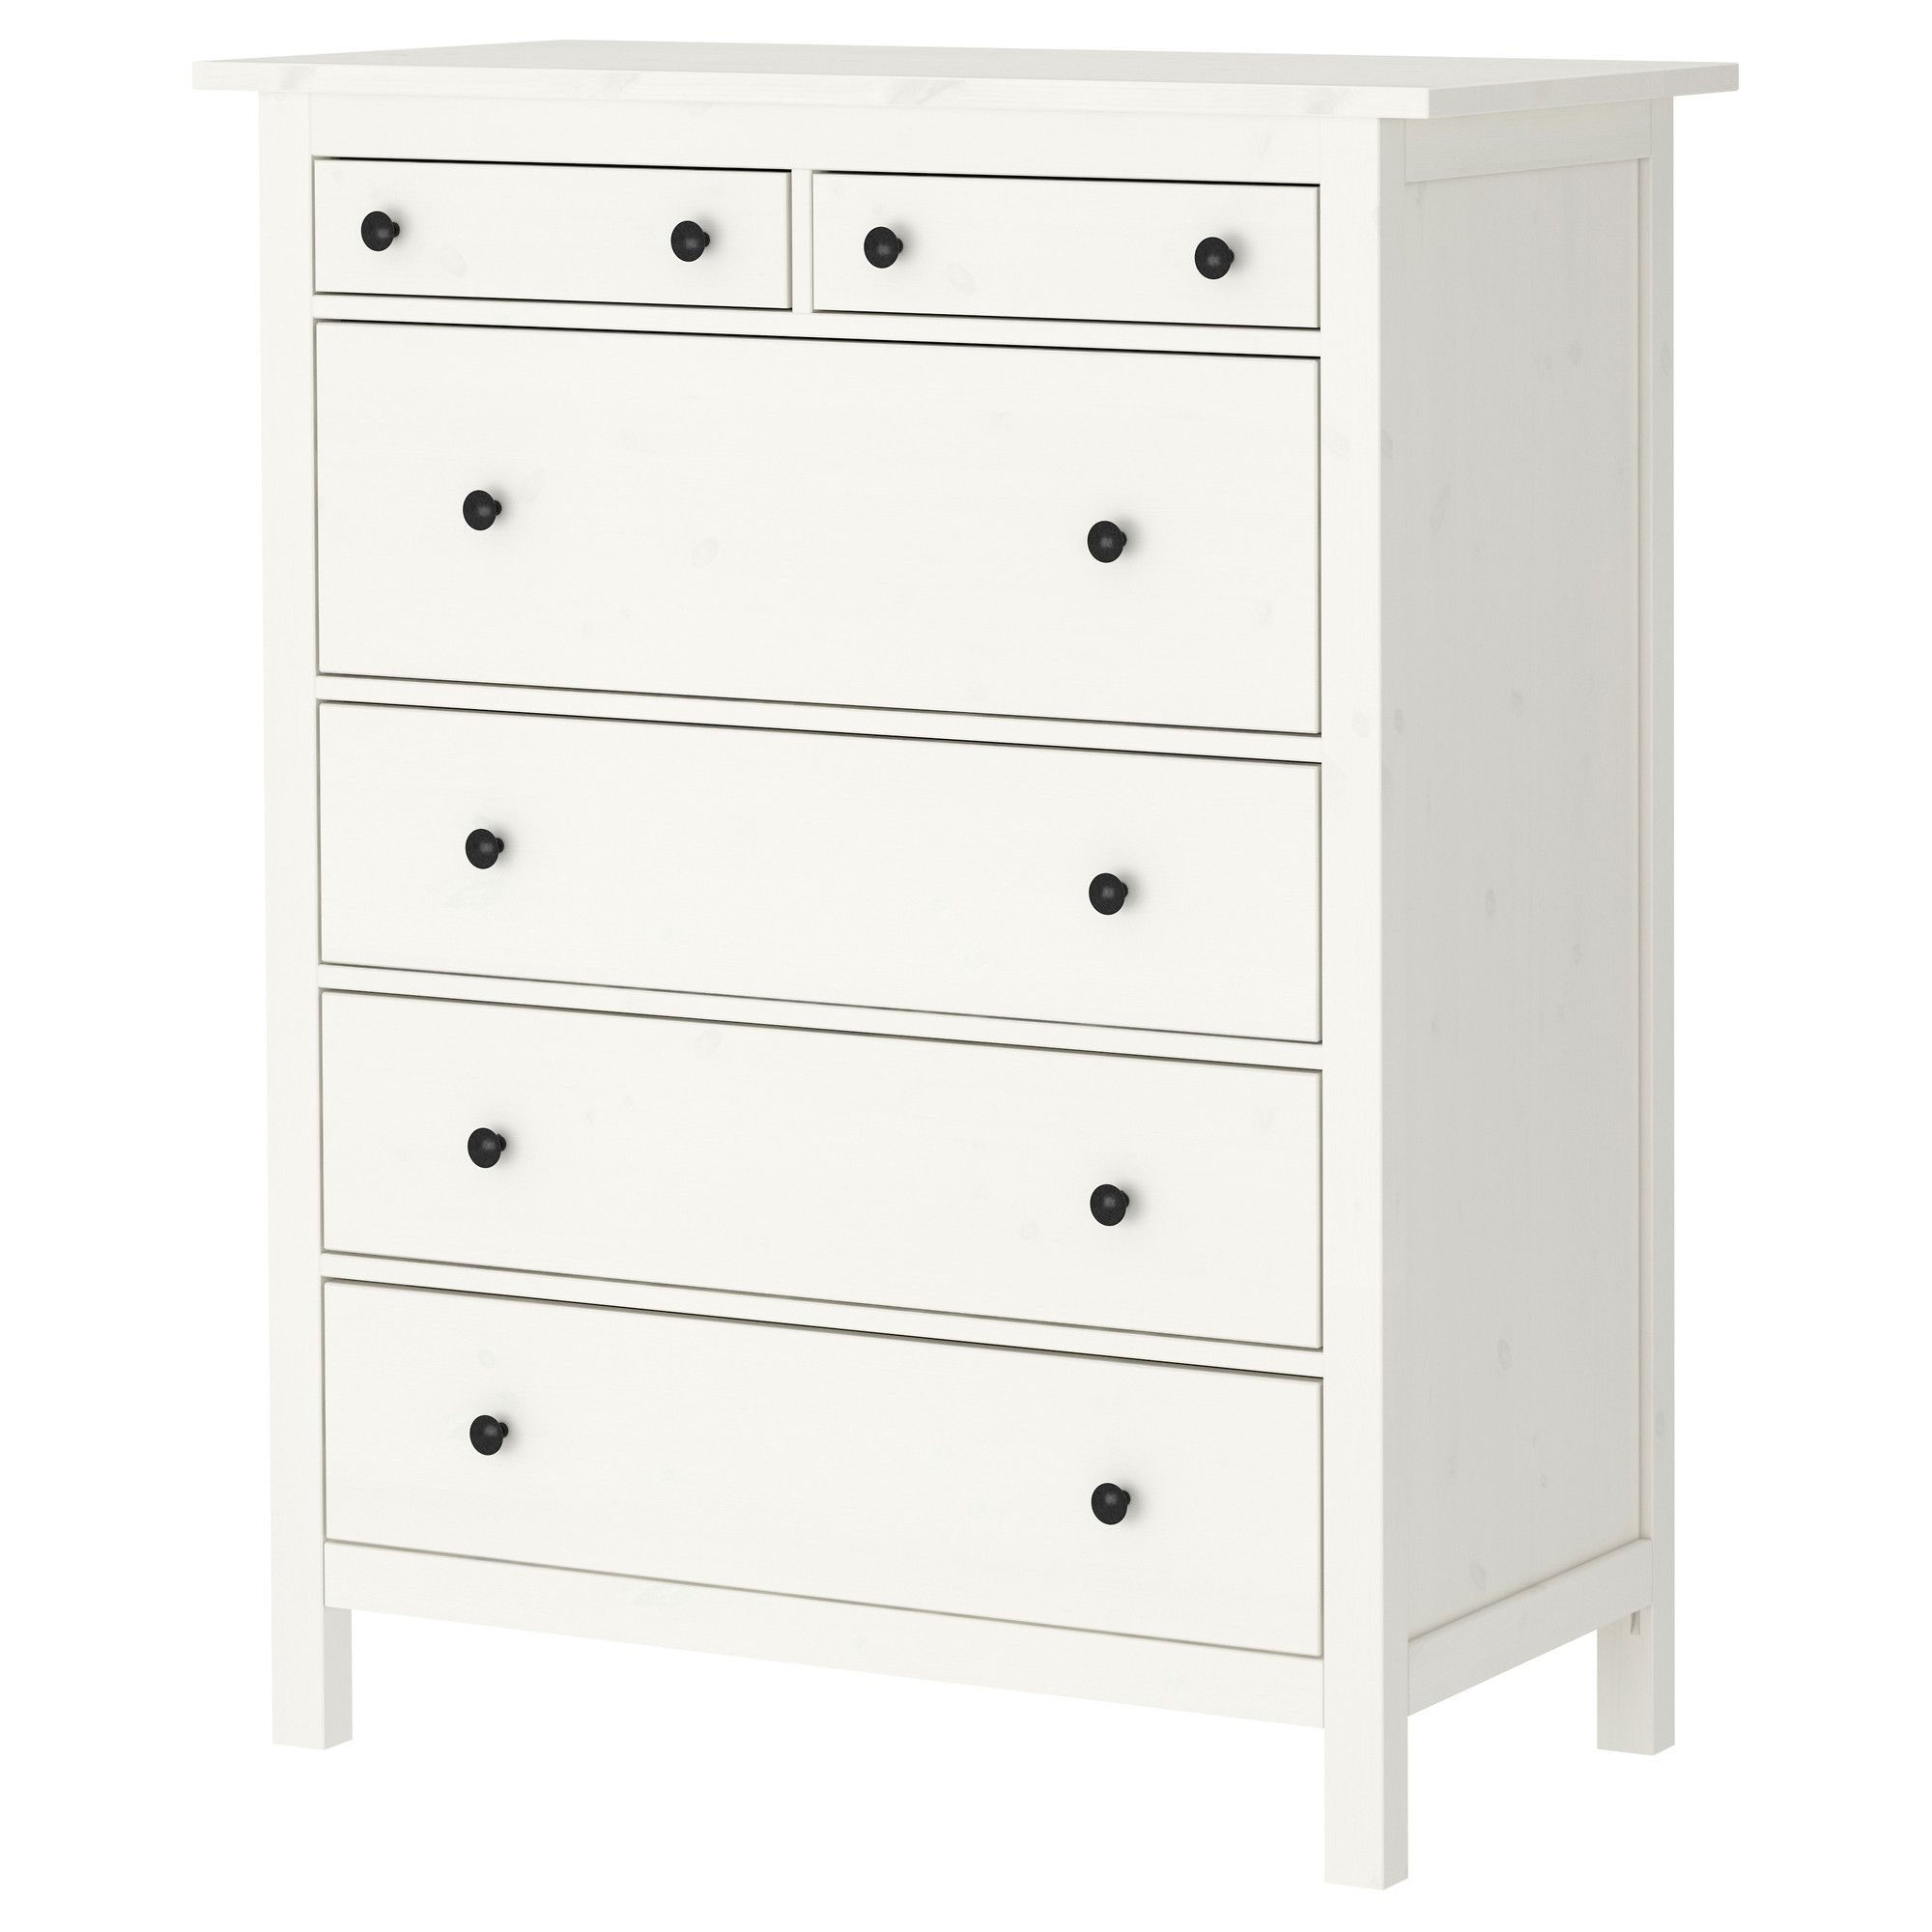 Mueble Cajonera Ikea Ikea Hemnes Chest Of 6 Drawers Dream Home Hemnes